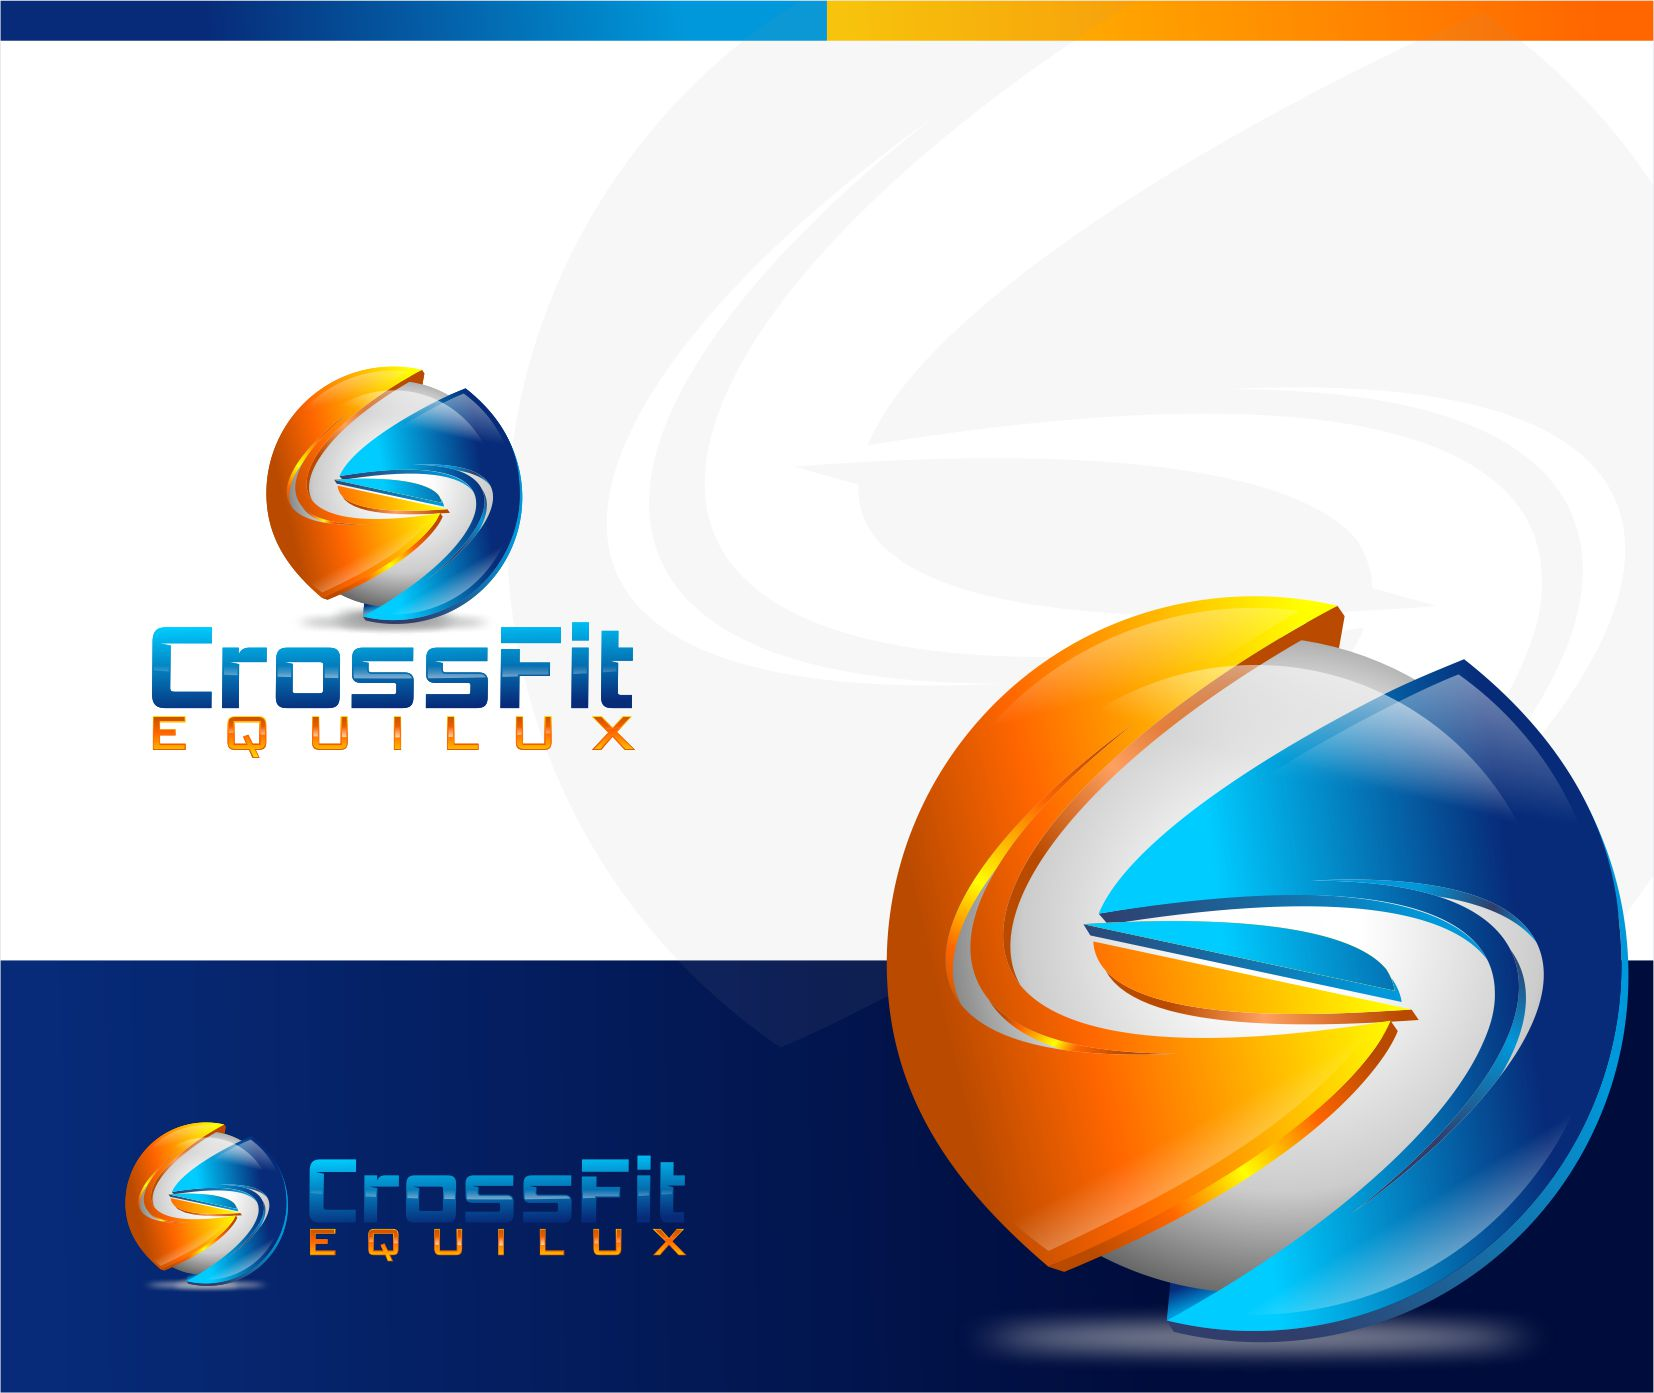 Logo Design by Raymond Garcia - Entry No. 78 in the Logo Design Contest Unique Logo Design Wanted for CrossFit Equilux.